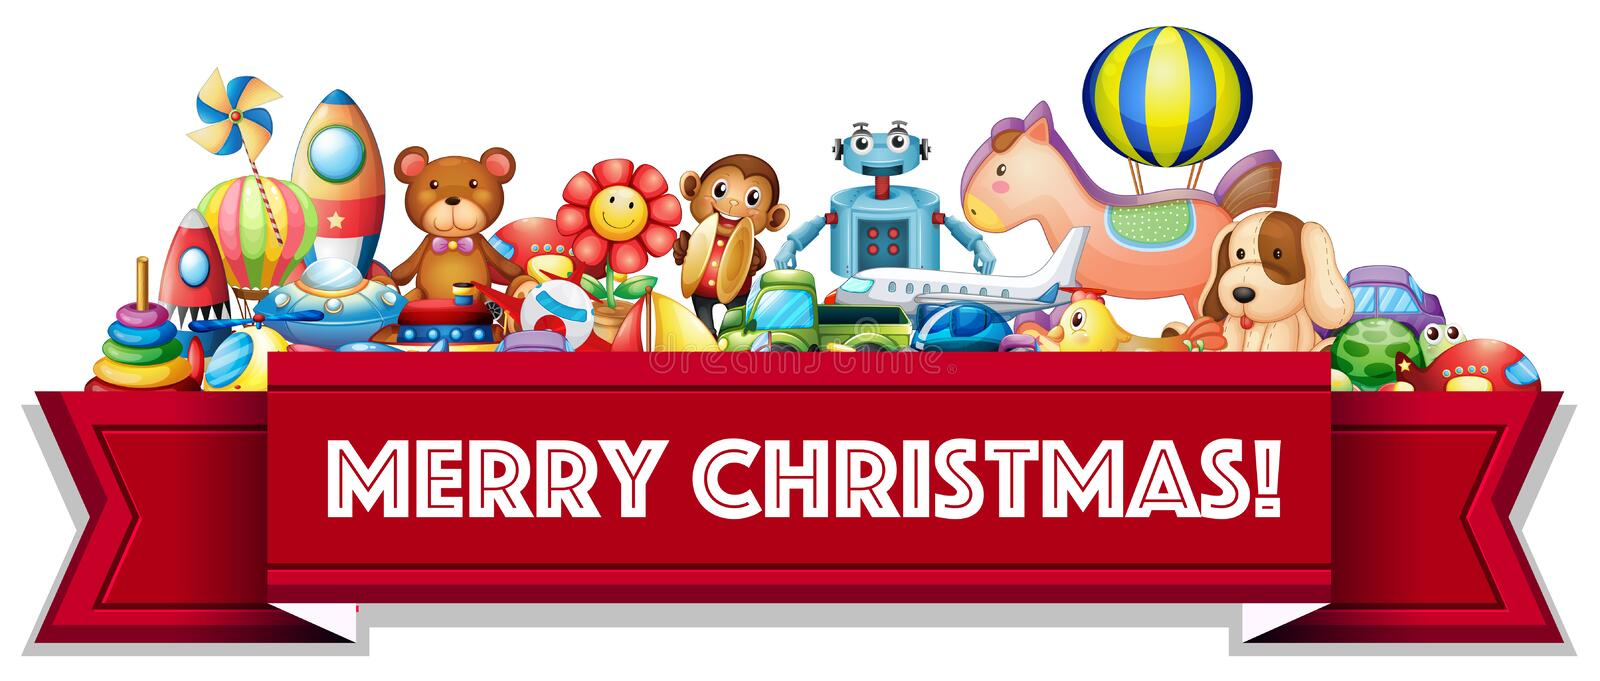 Merry Christmas sign with many toys stock illustration